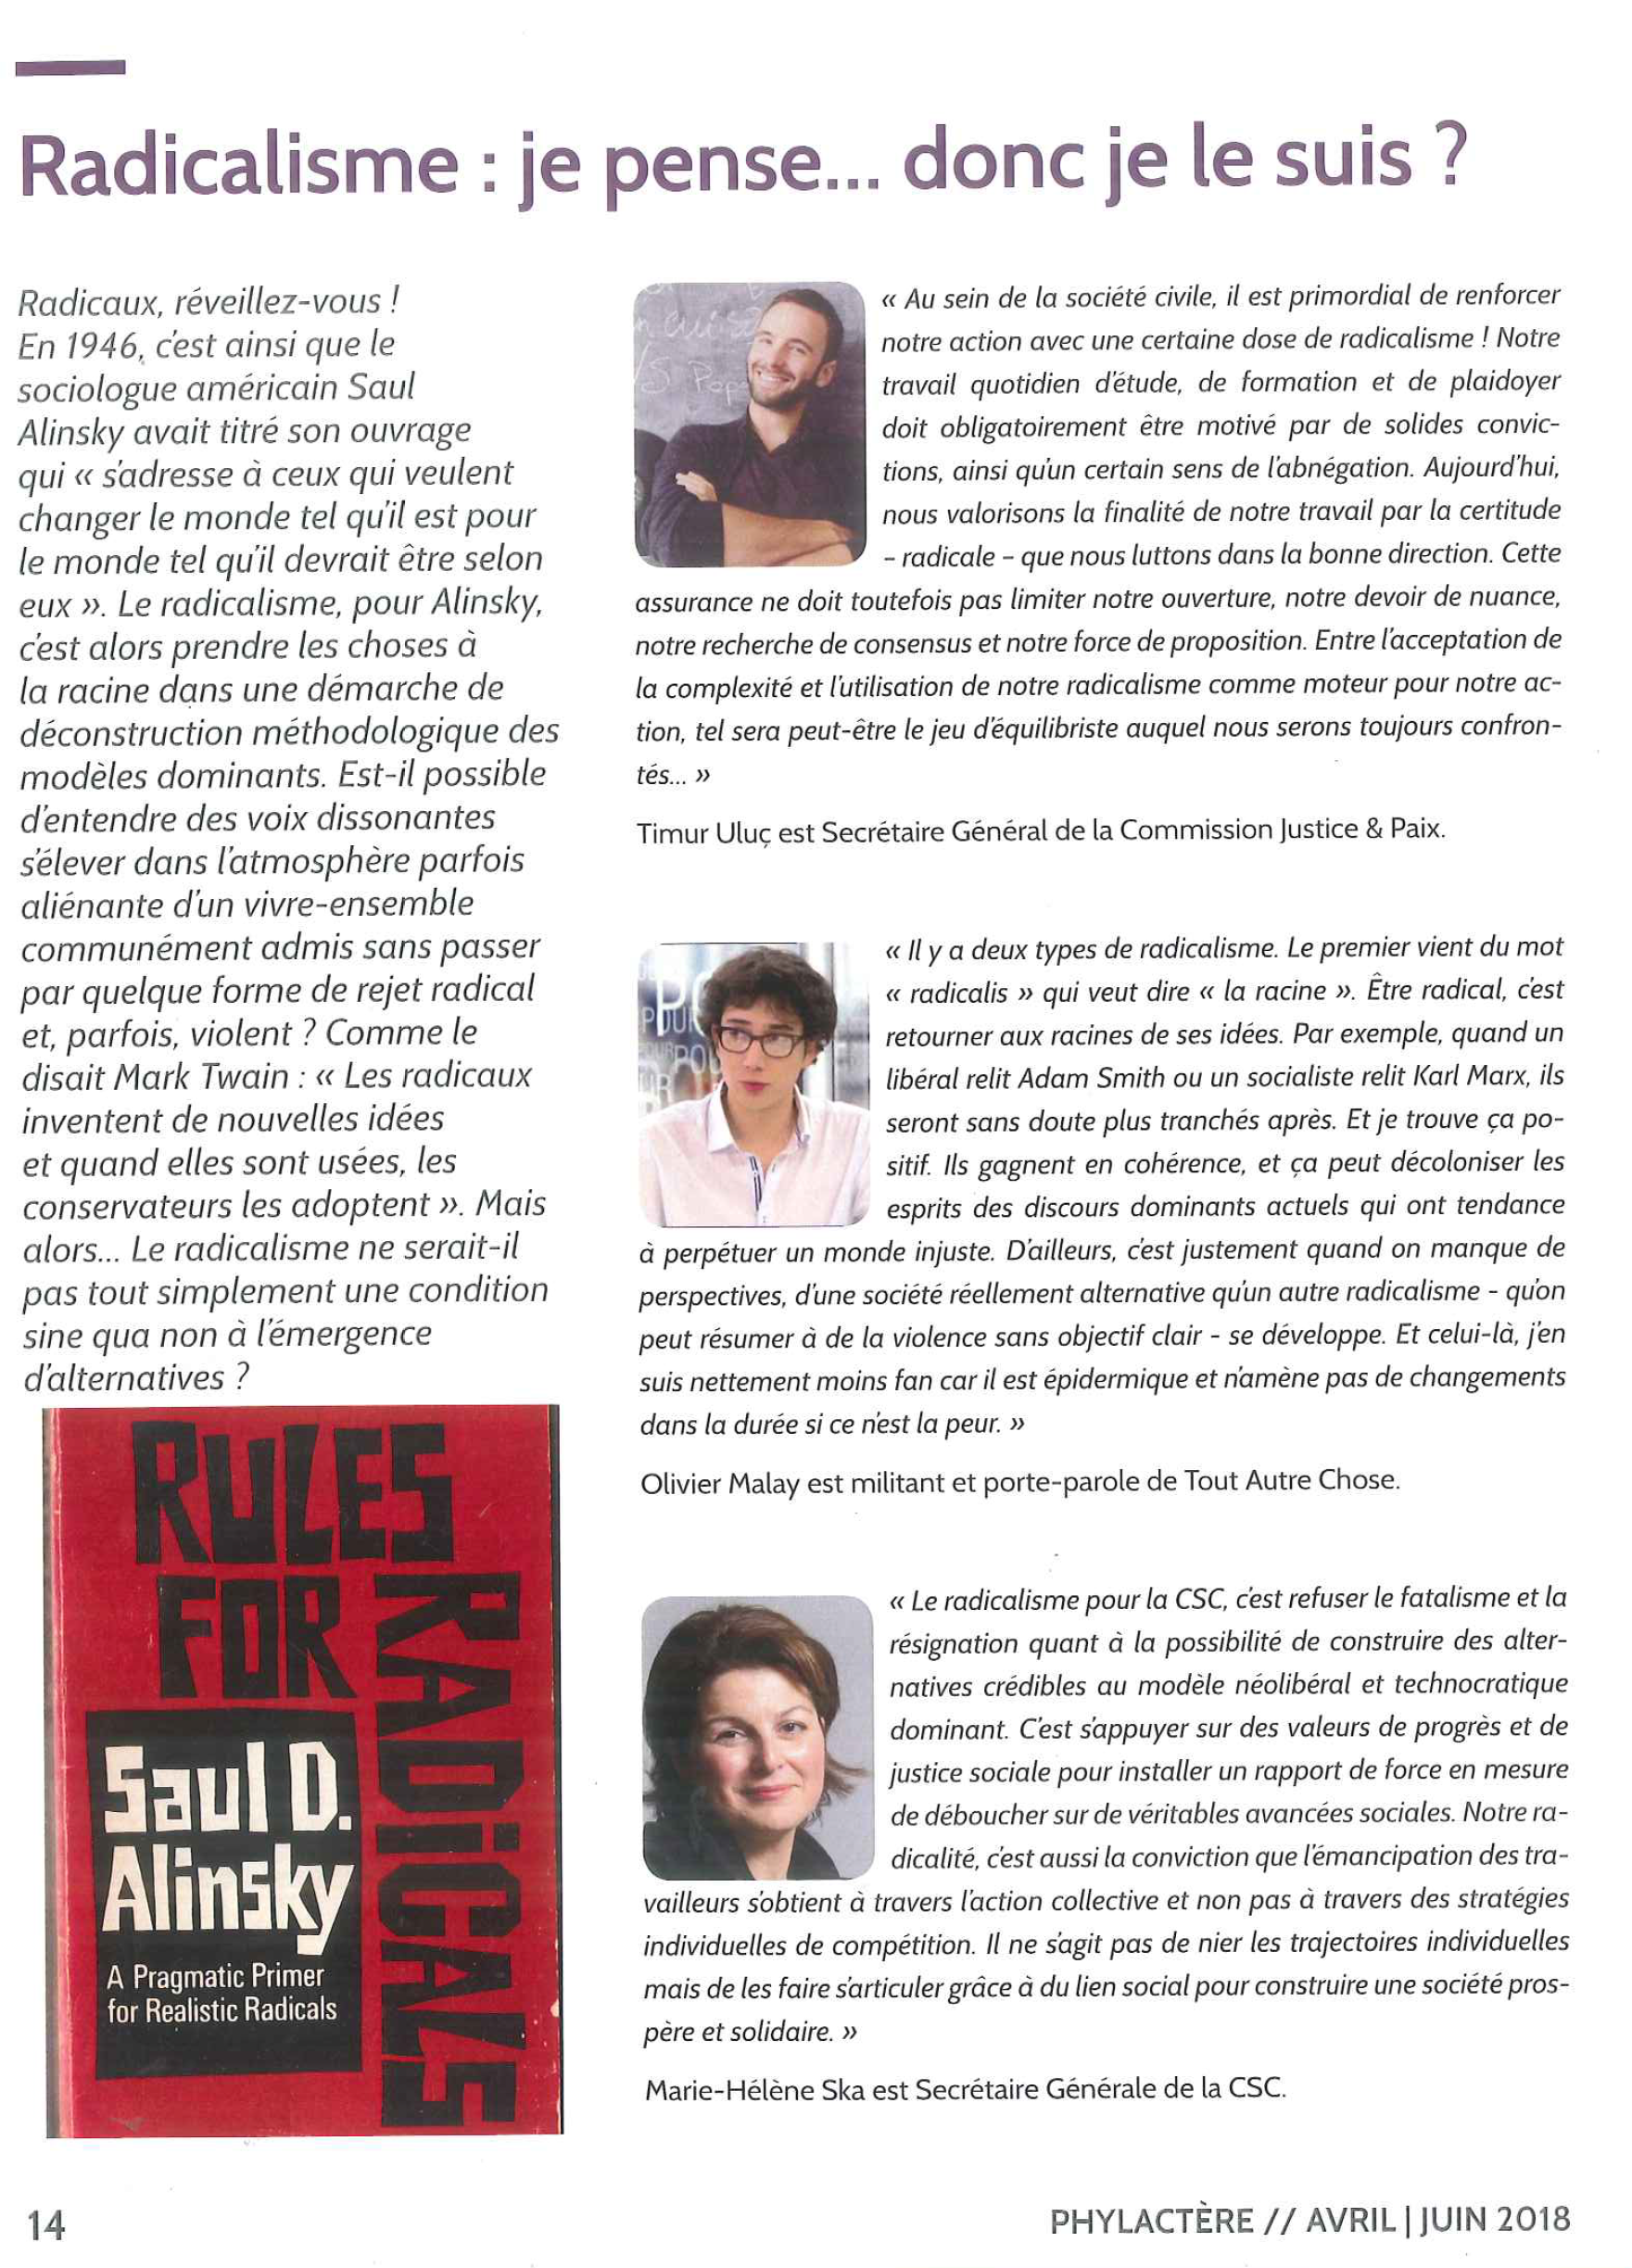 phylactere_-_dossier_radicalisme_-_opinion_timur_uluc.png